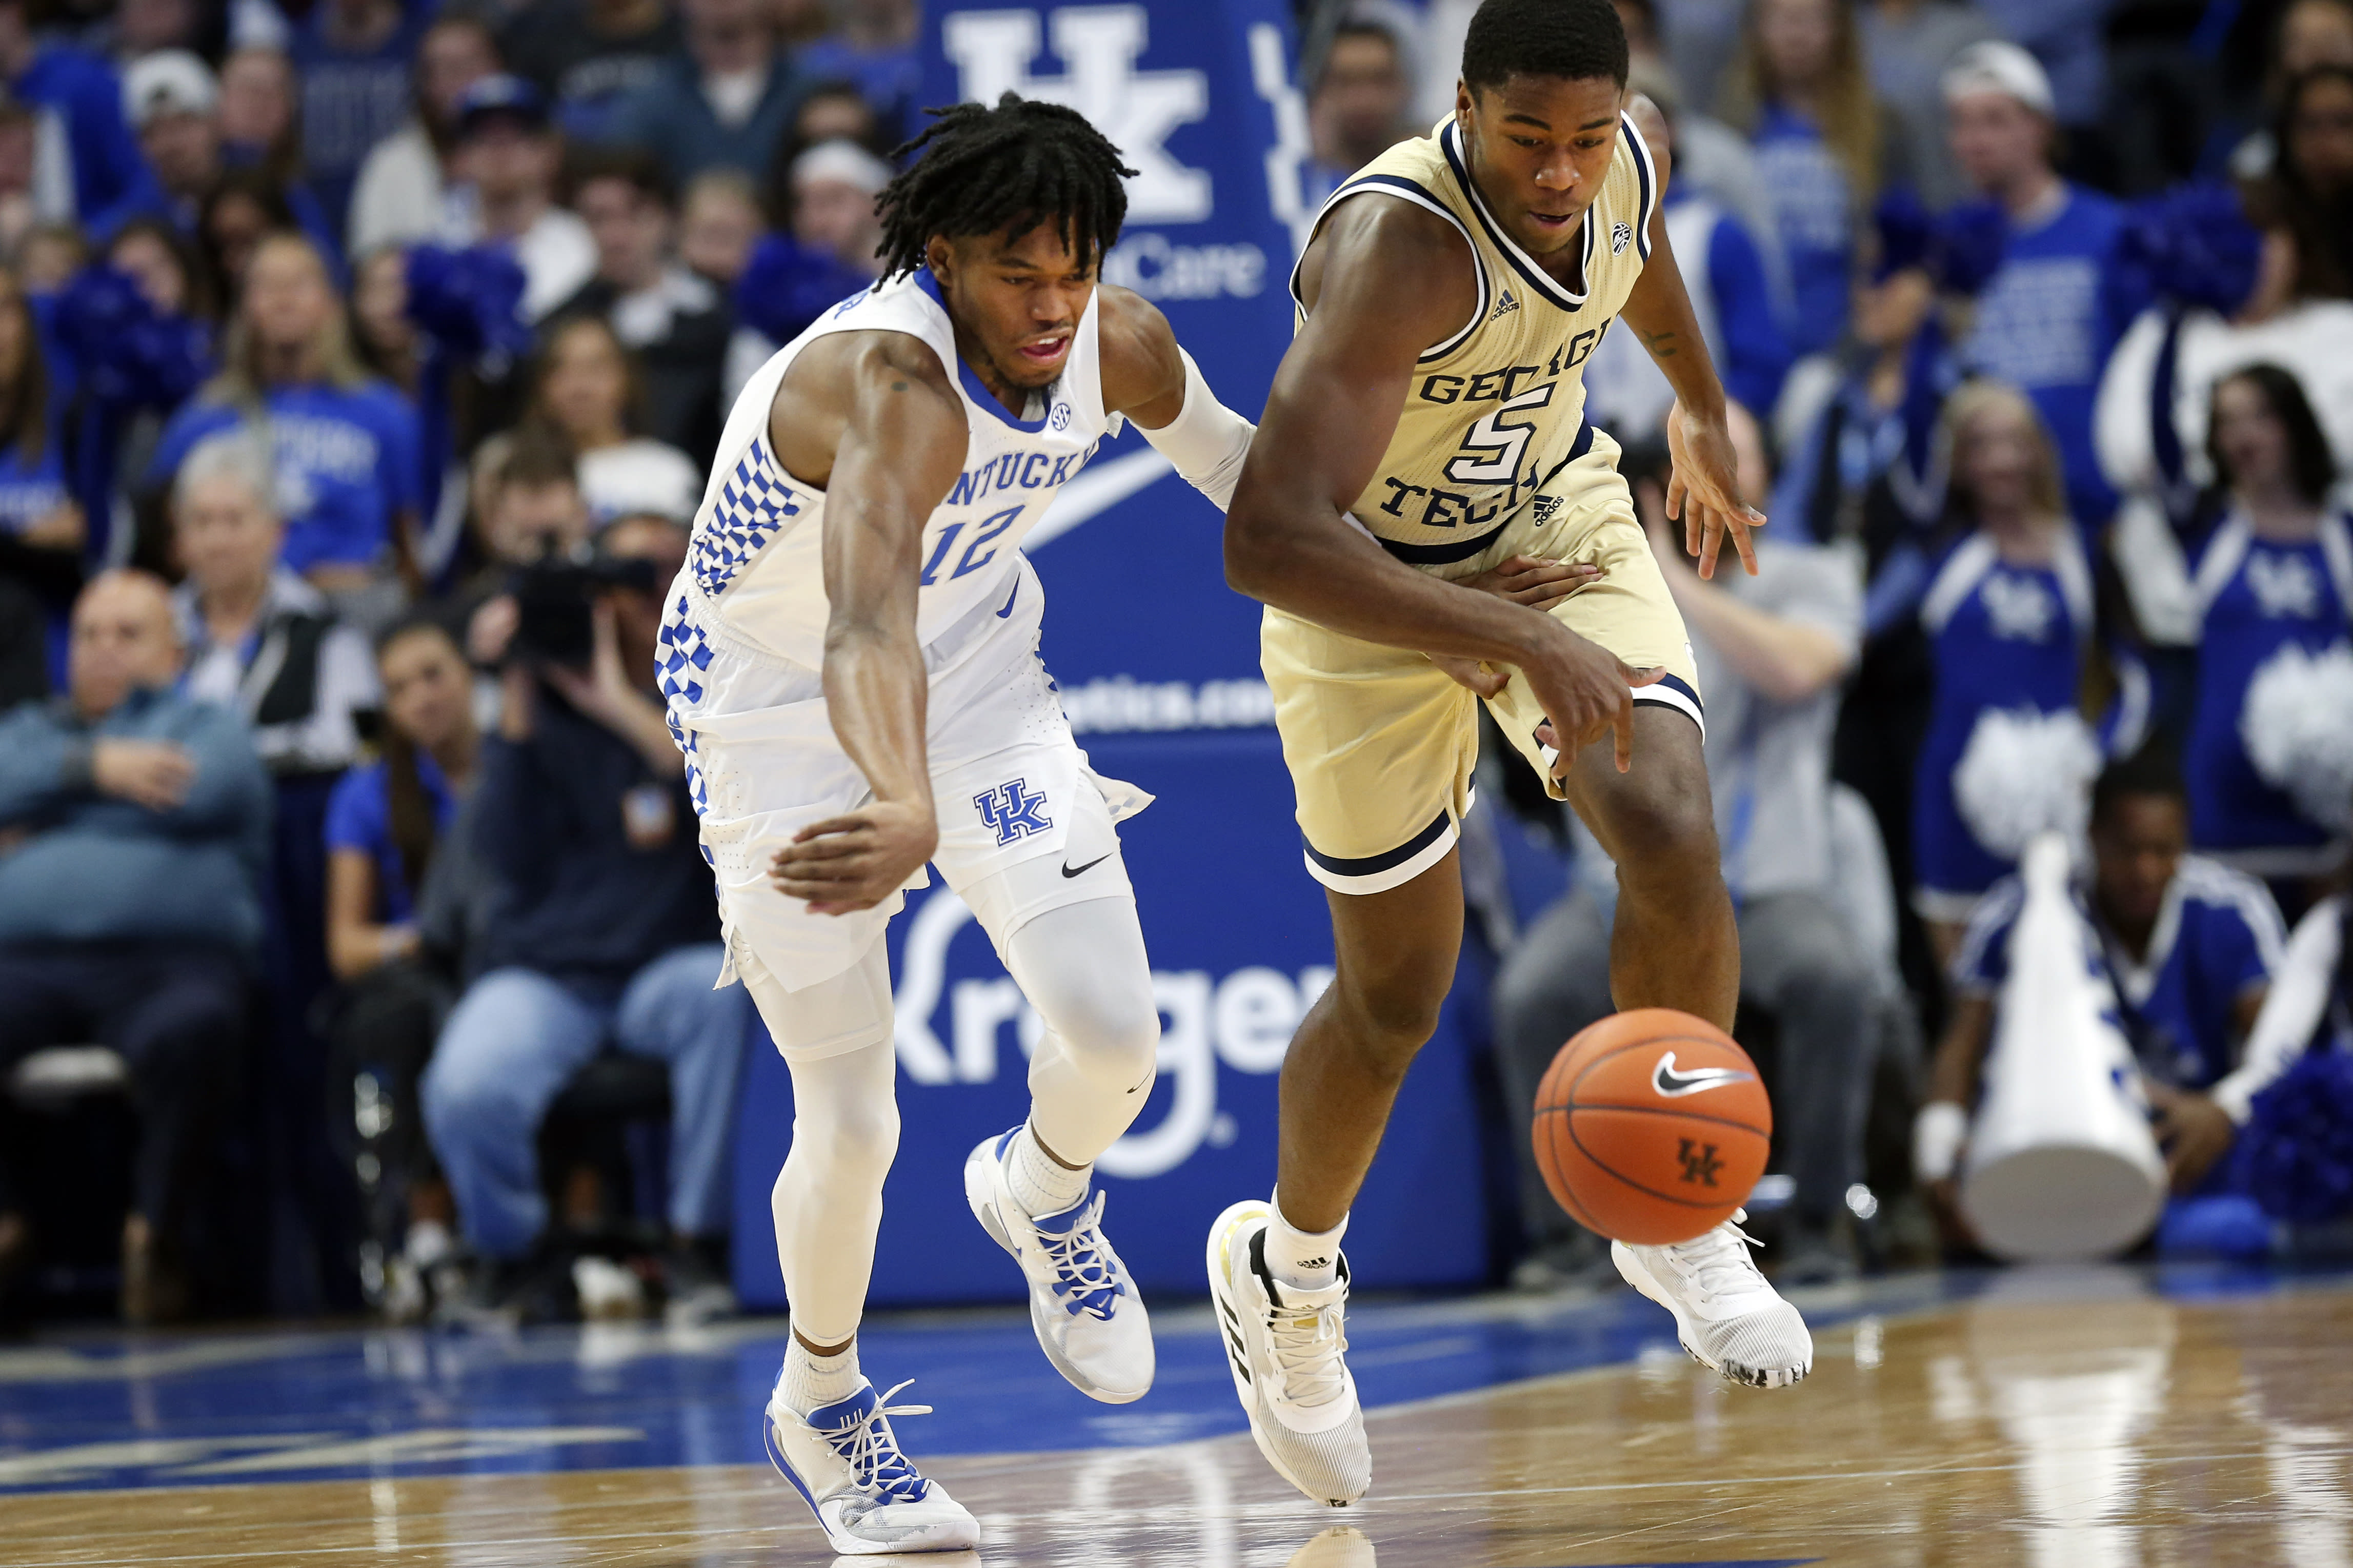 No. 8 Kentucky rolls past Georgia Tech, improves to 8-1